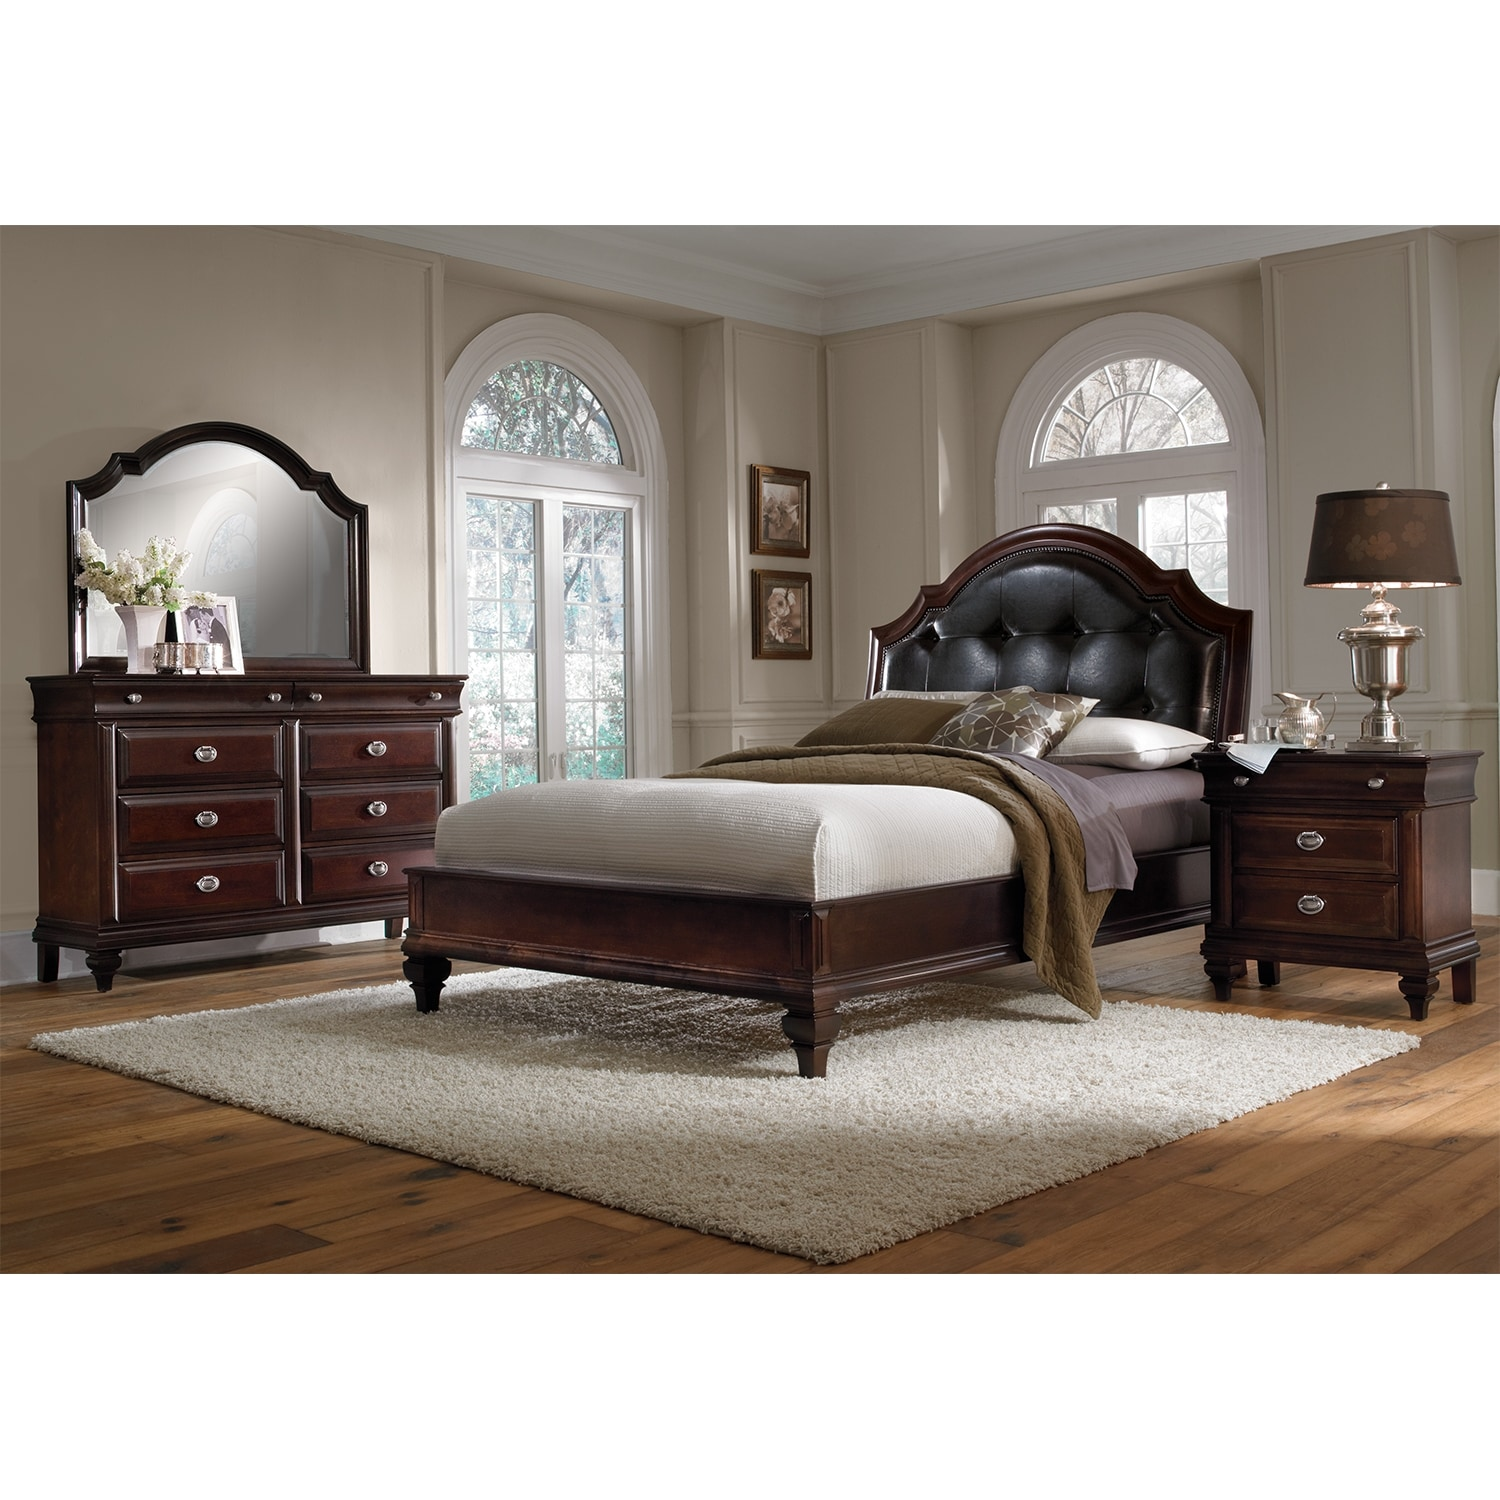 Manhattan 6 piece queen bedroom set cherry american for Signature furniture